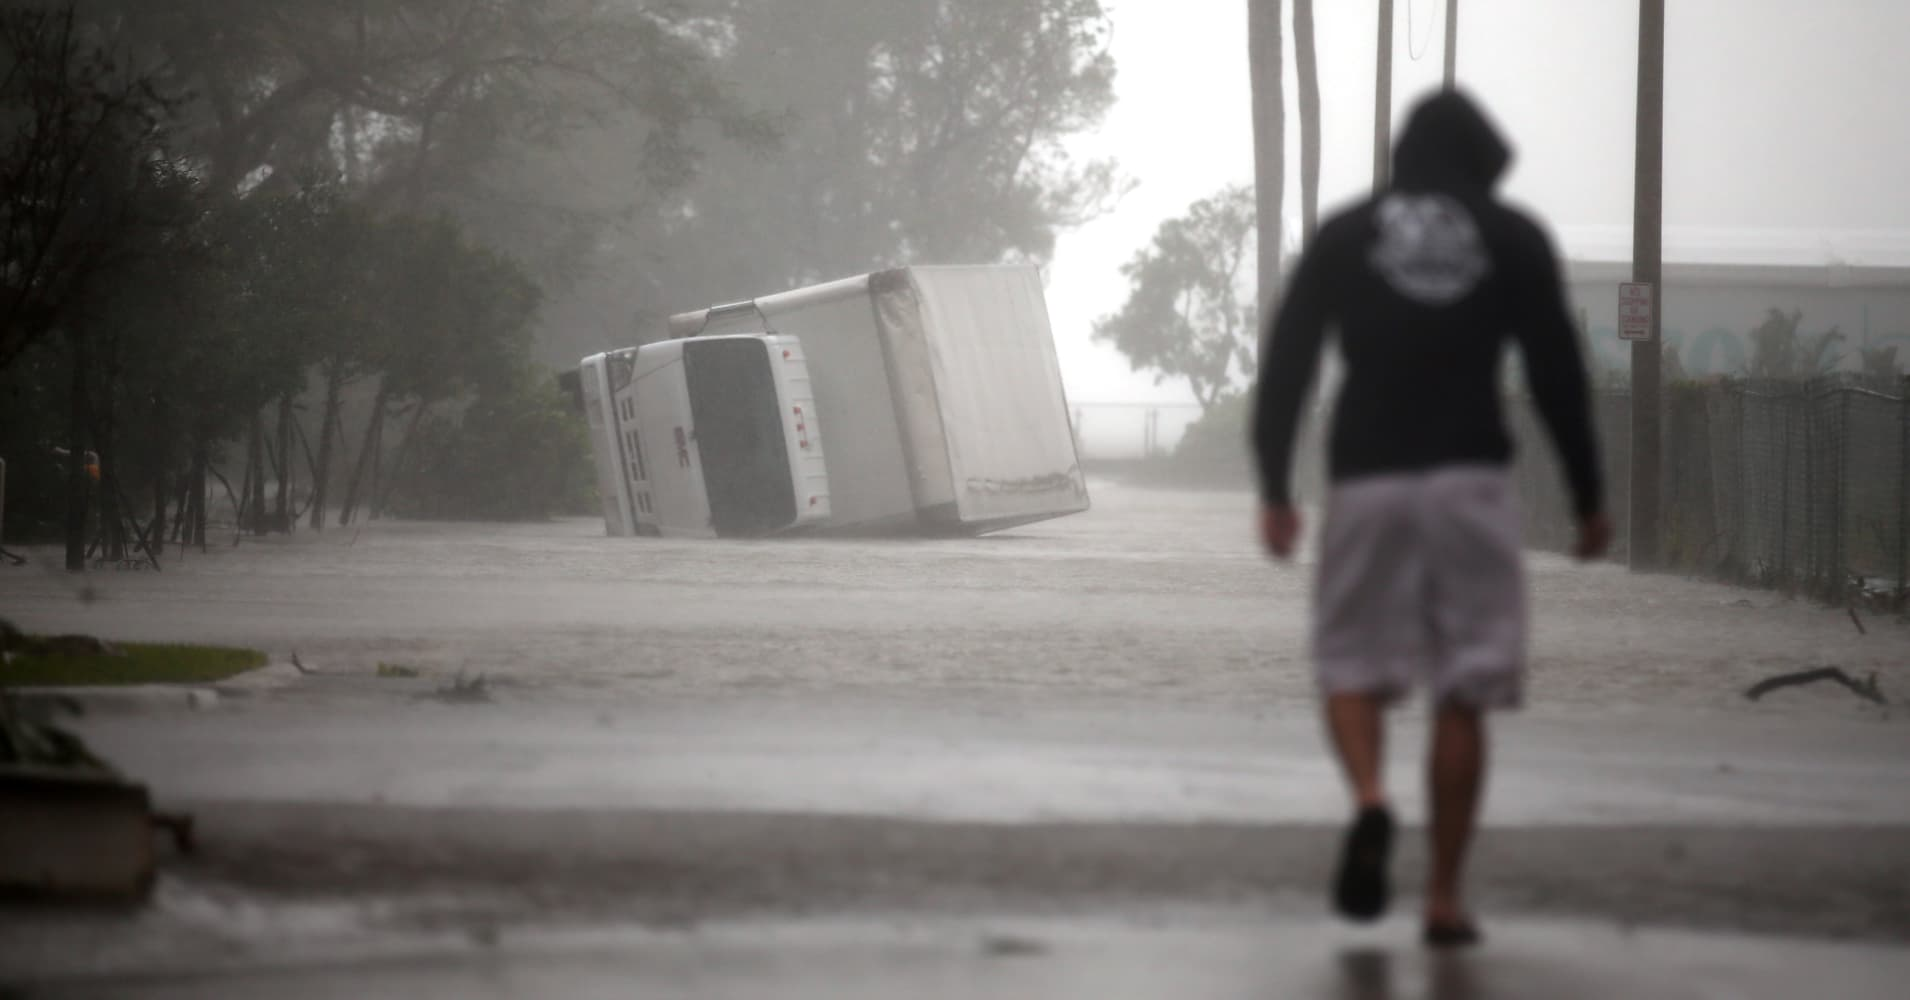 Hurricane Irma leaves its mark on Florida with incredible winds